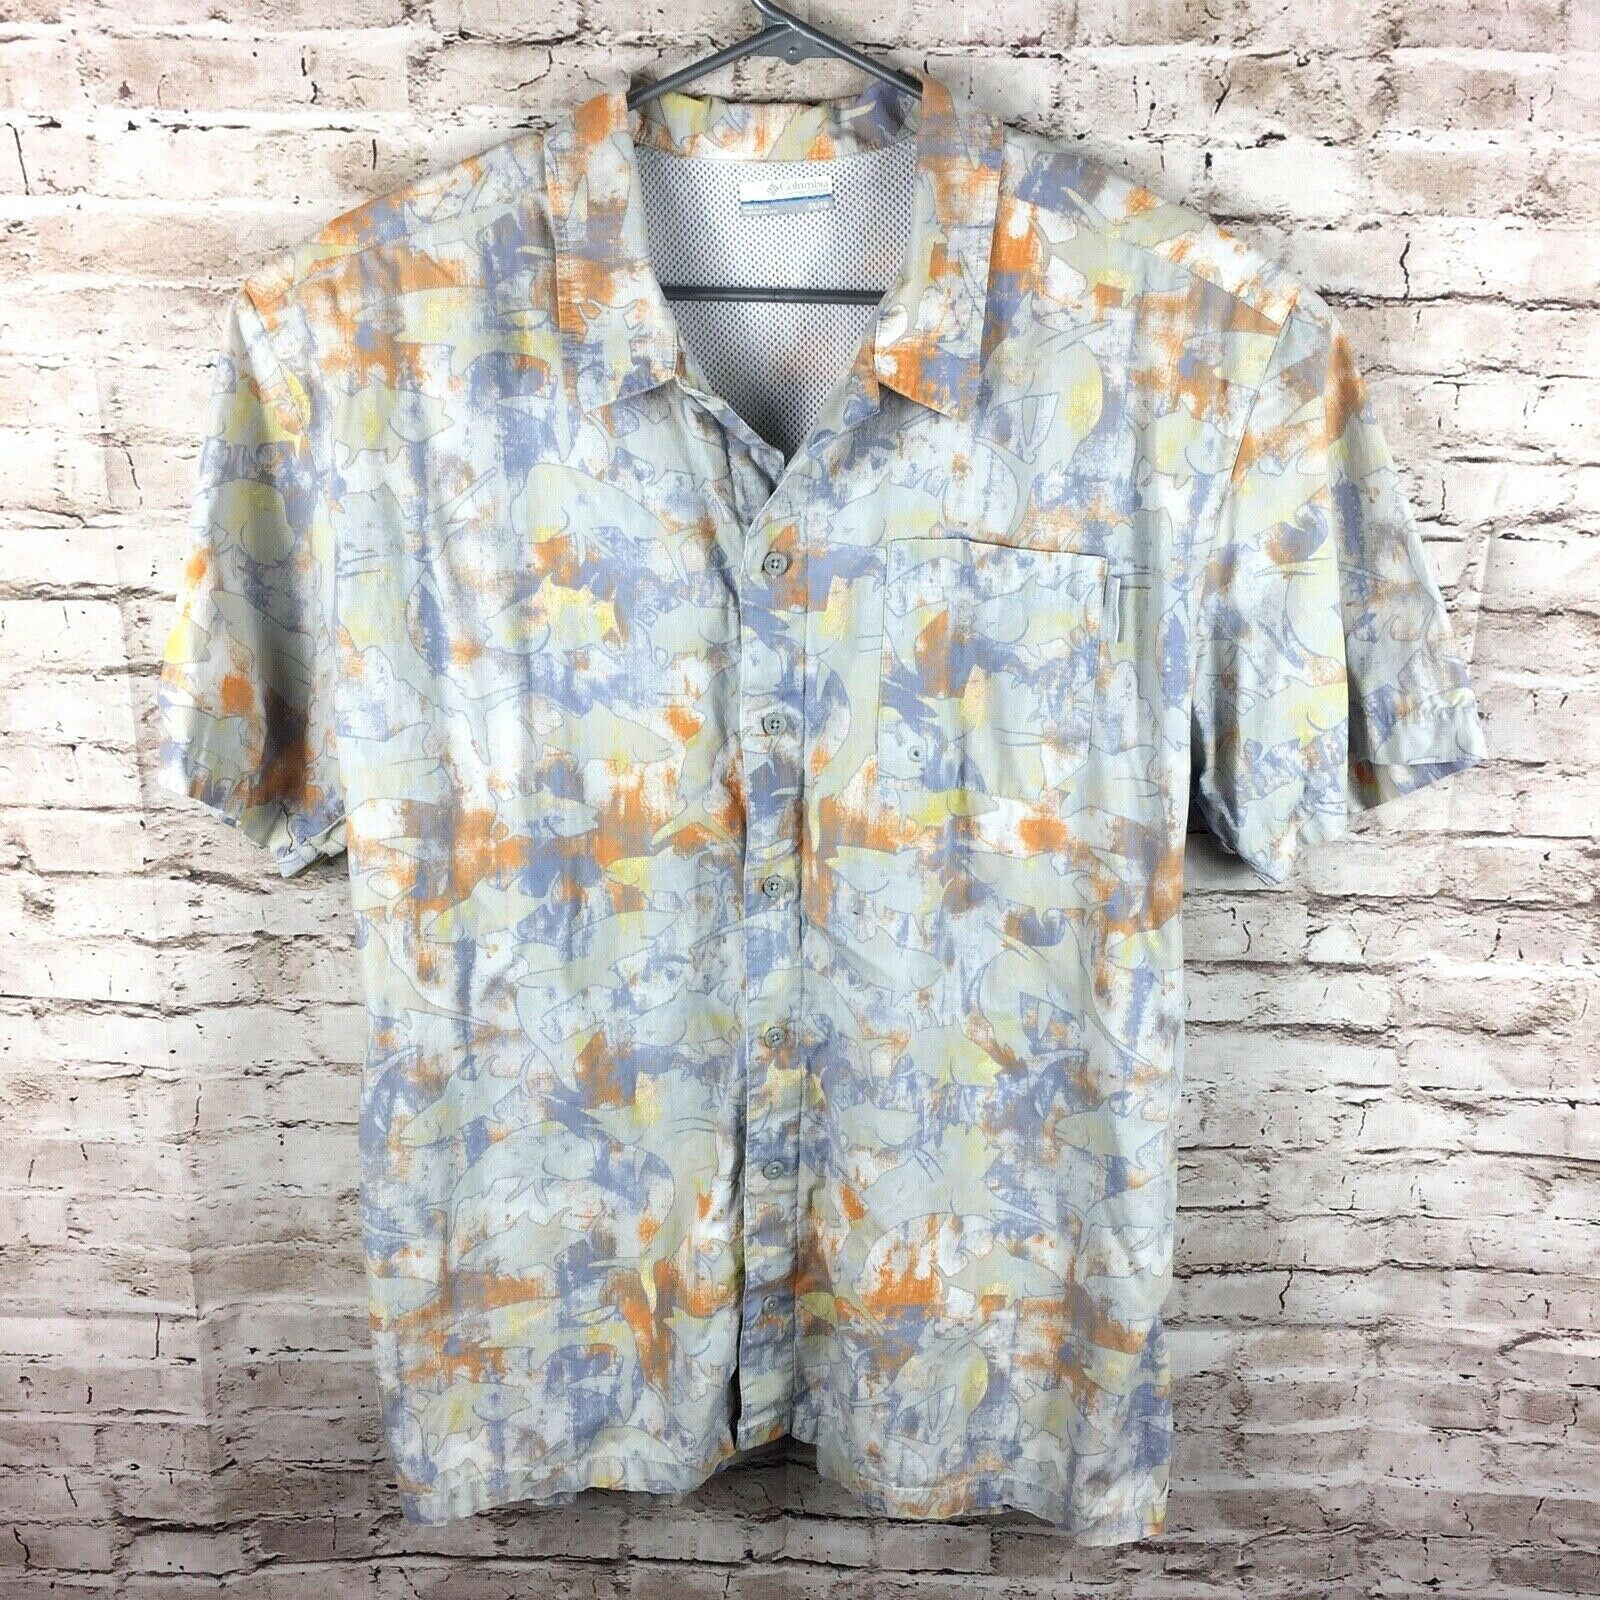 Columbia PFG Mens XL Multi-color Vented Pro Fishing Shirt